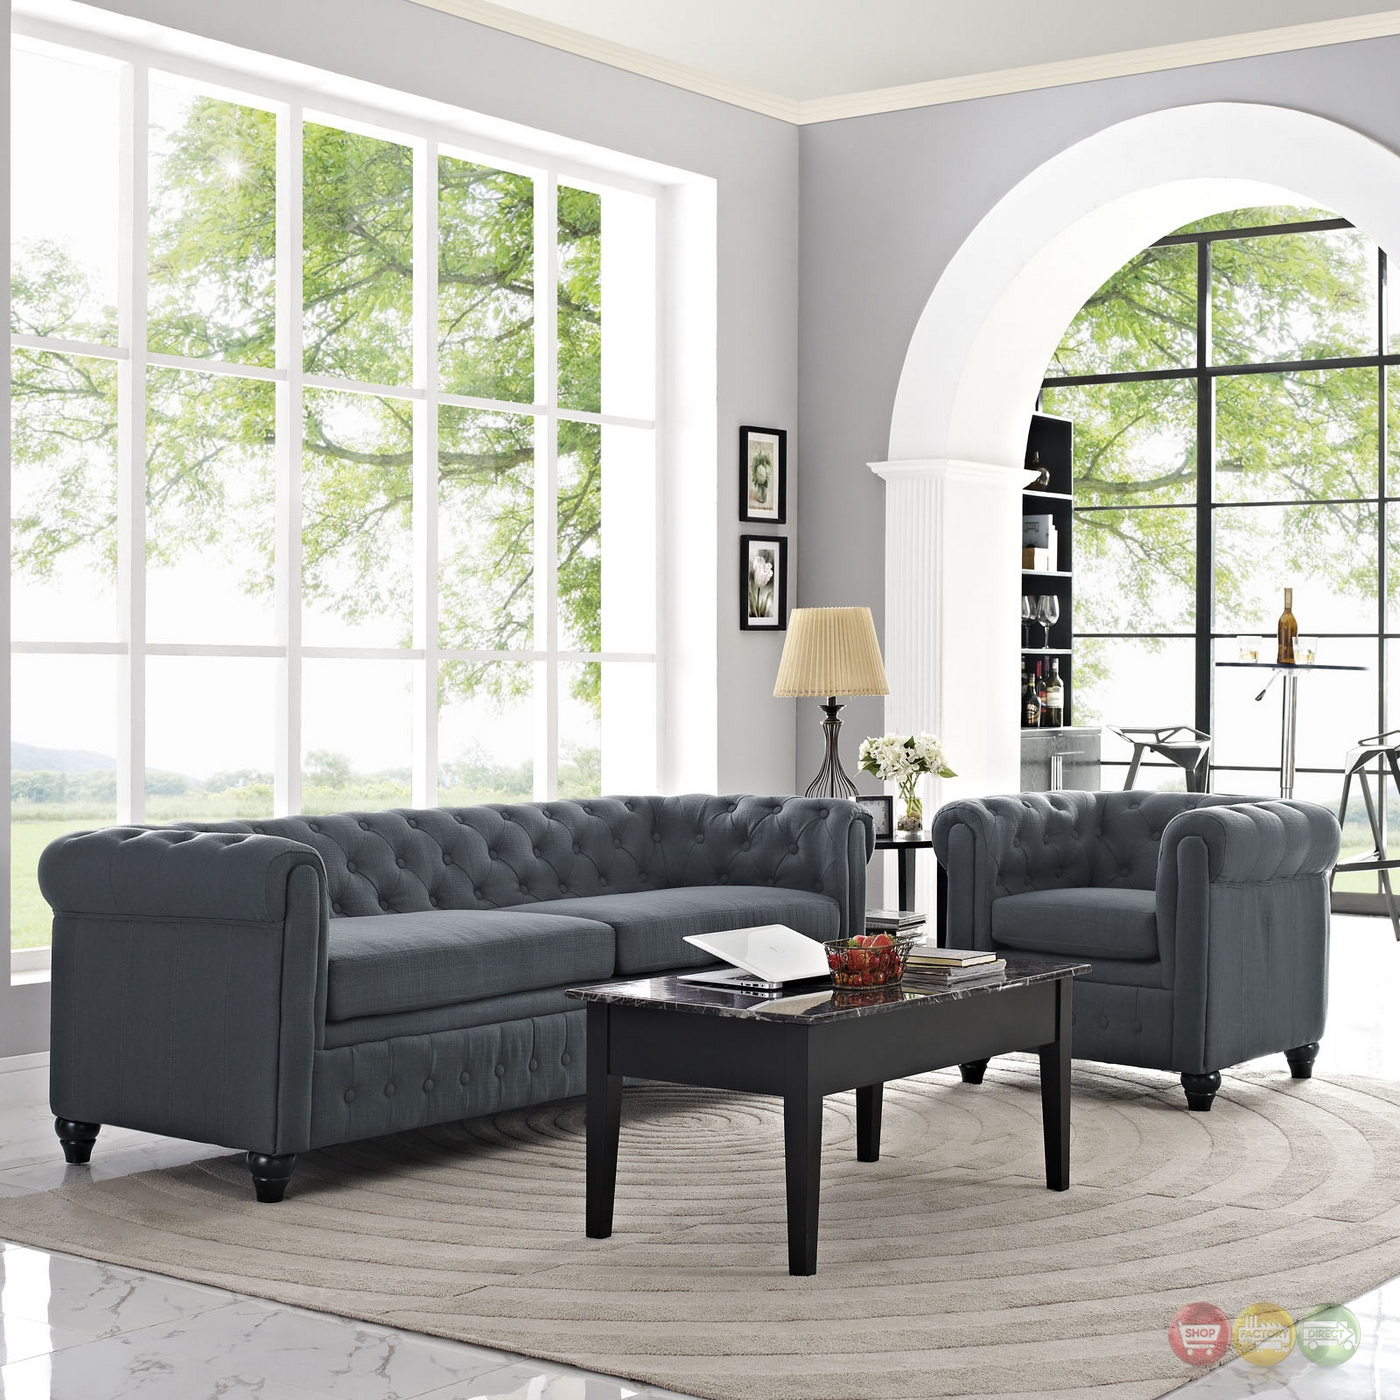 earl contemporary 2pc fabric upholstered living room set gray. Black Bedroom Furniture Sets. Home Design Ideas